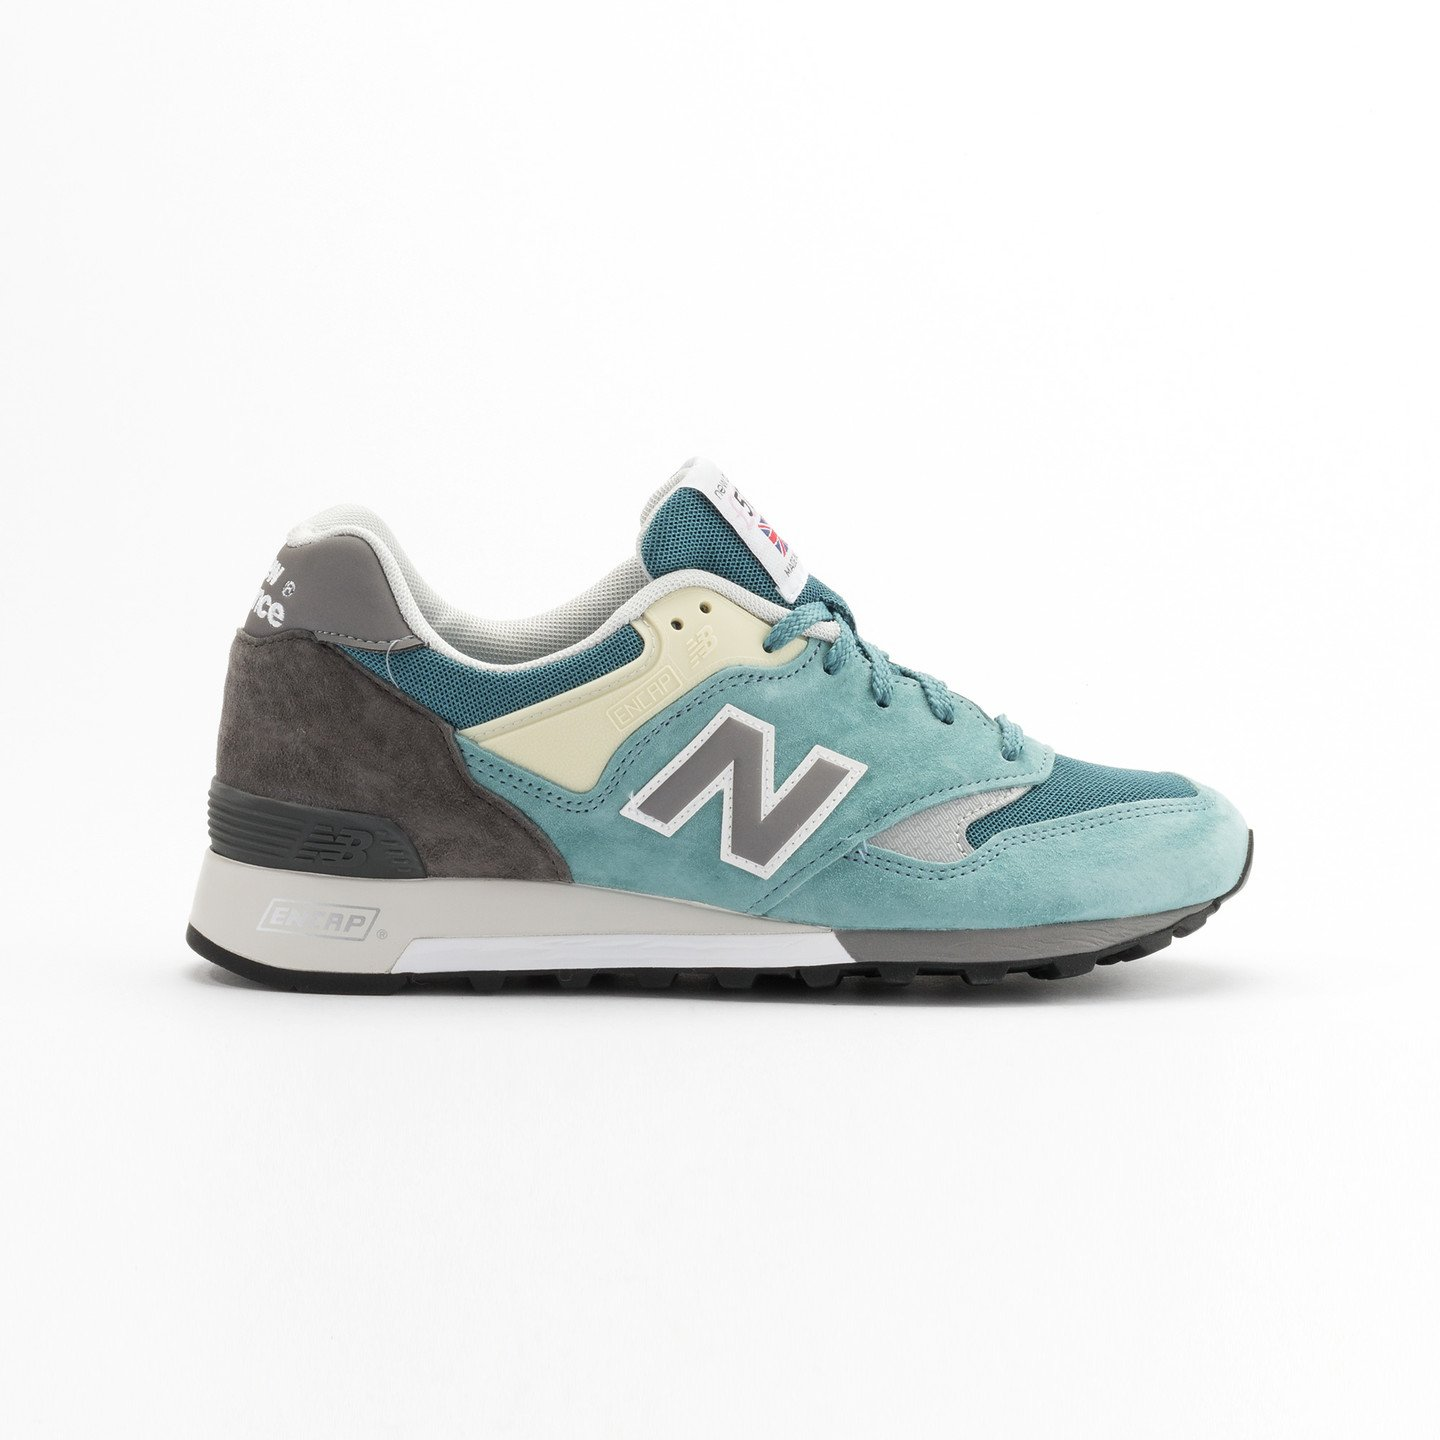 New Balance M577 ETB - Made in England Sea Glass / Grey/ Yellow M577ETB-45